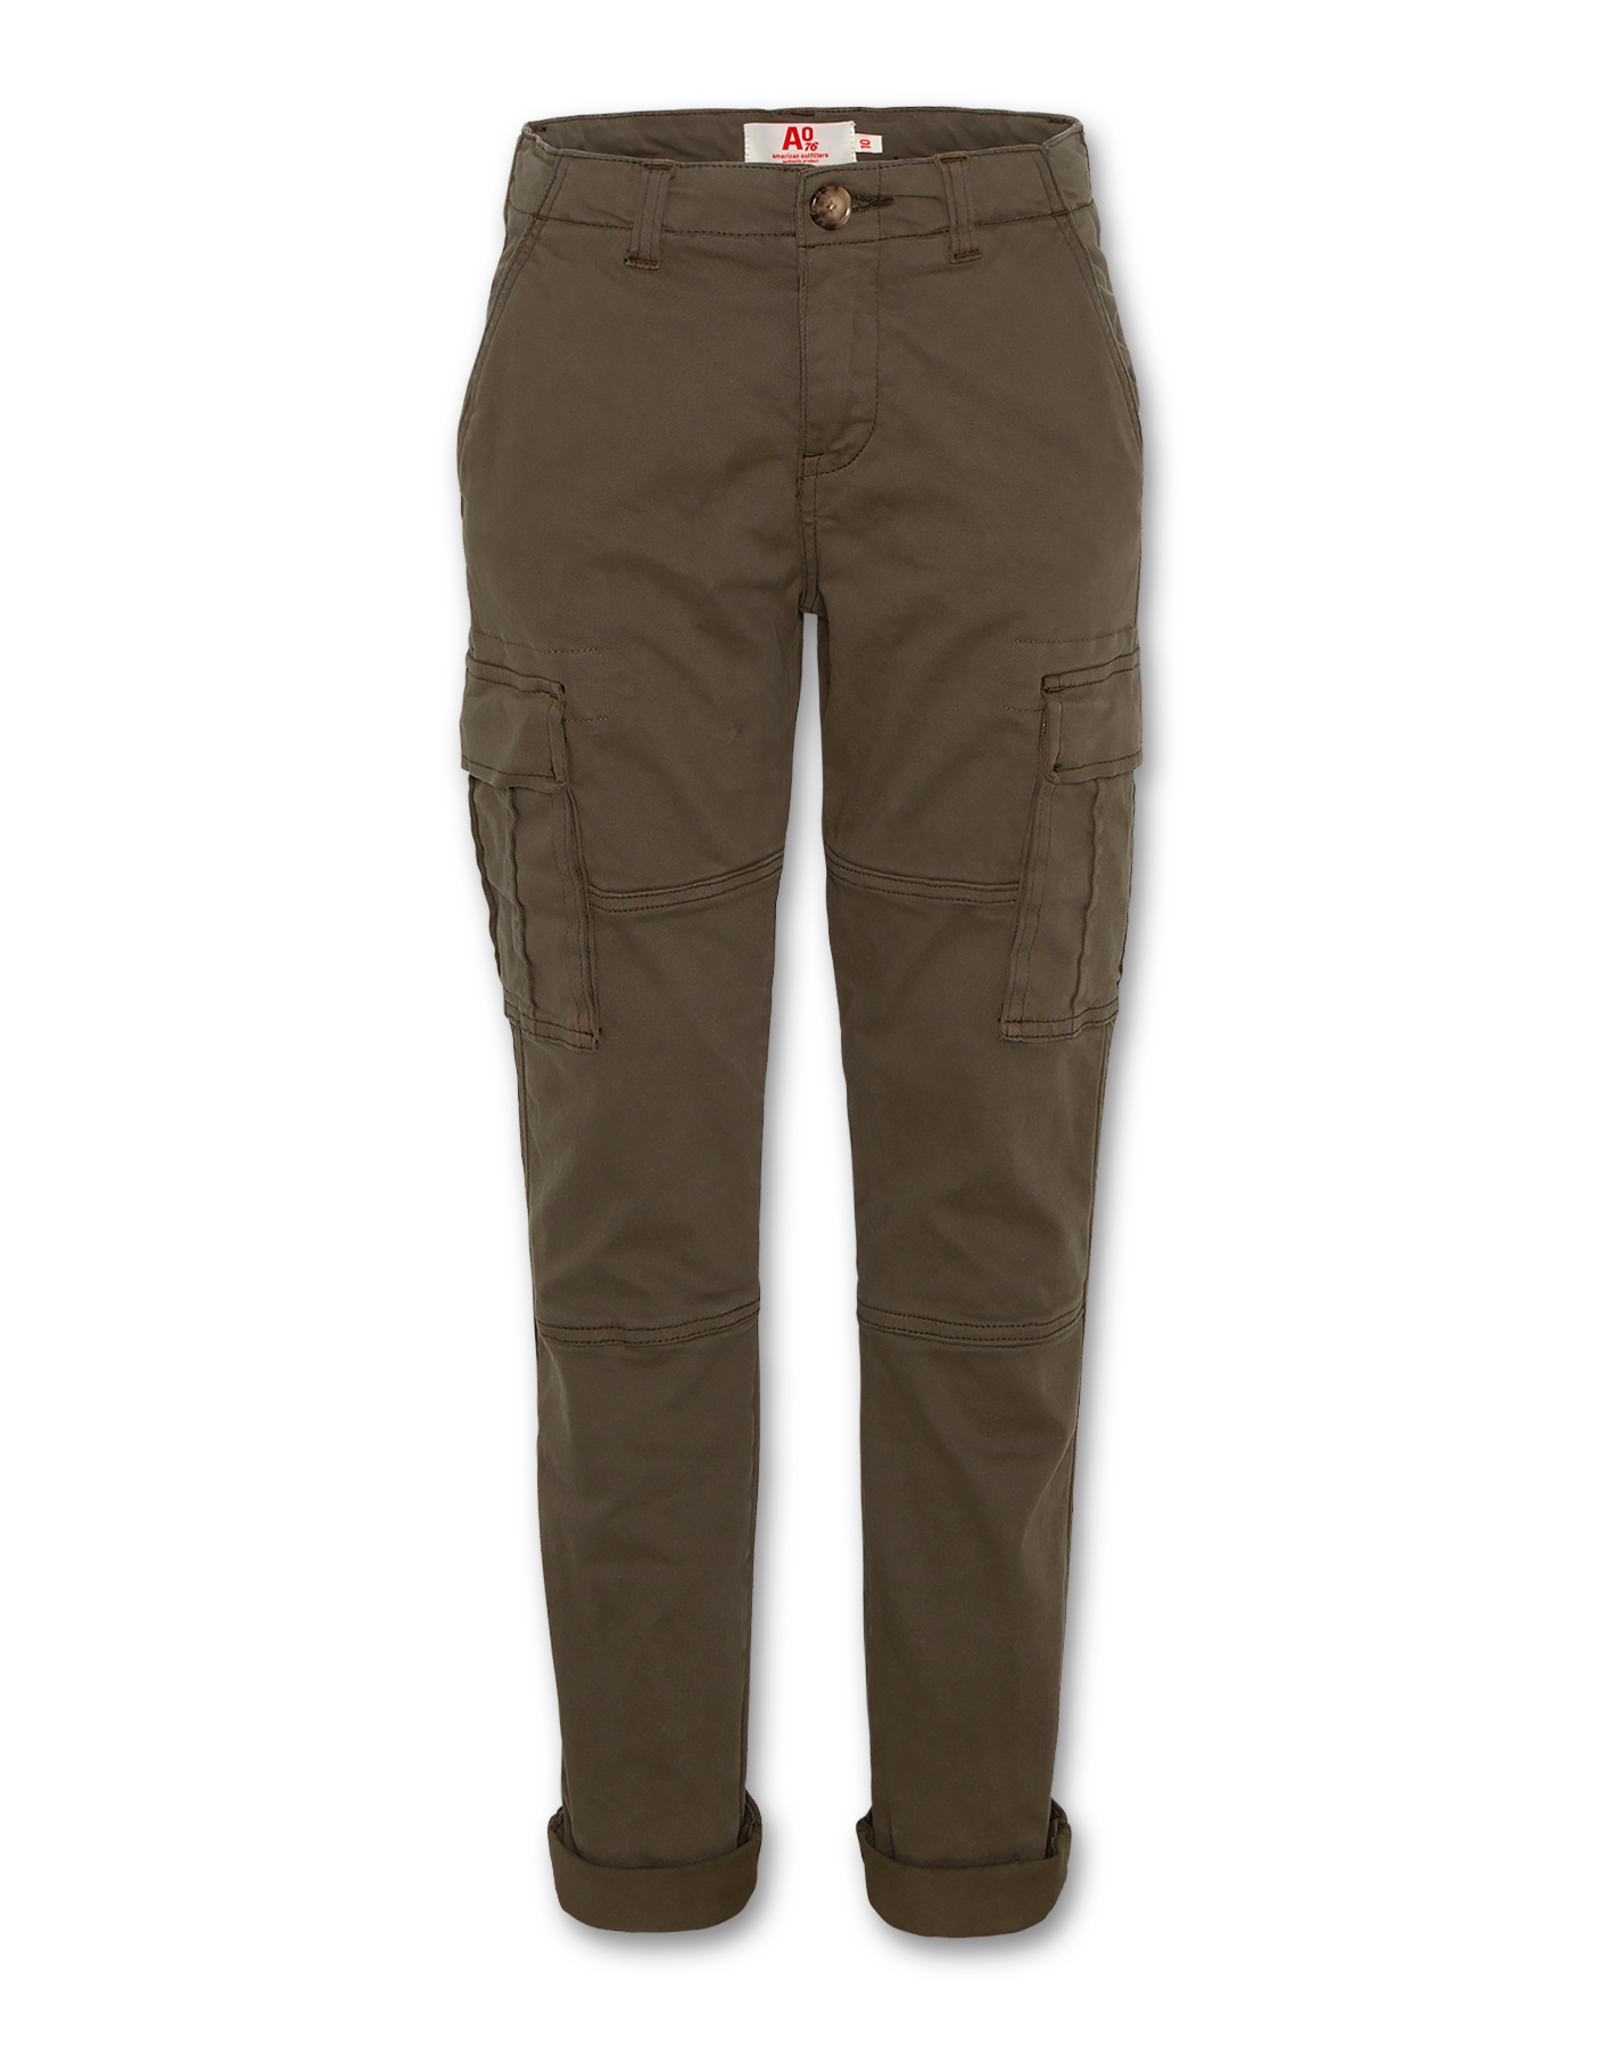 AMERICAN OUTFITTERS AO76 cargo pants dark olive